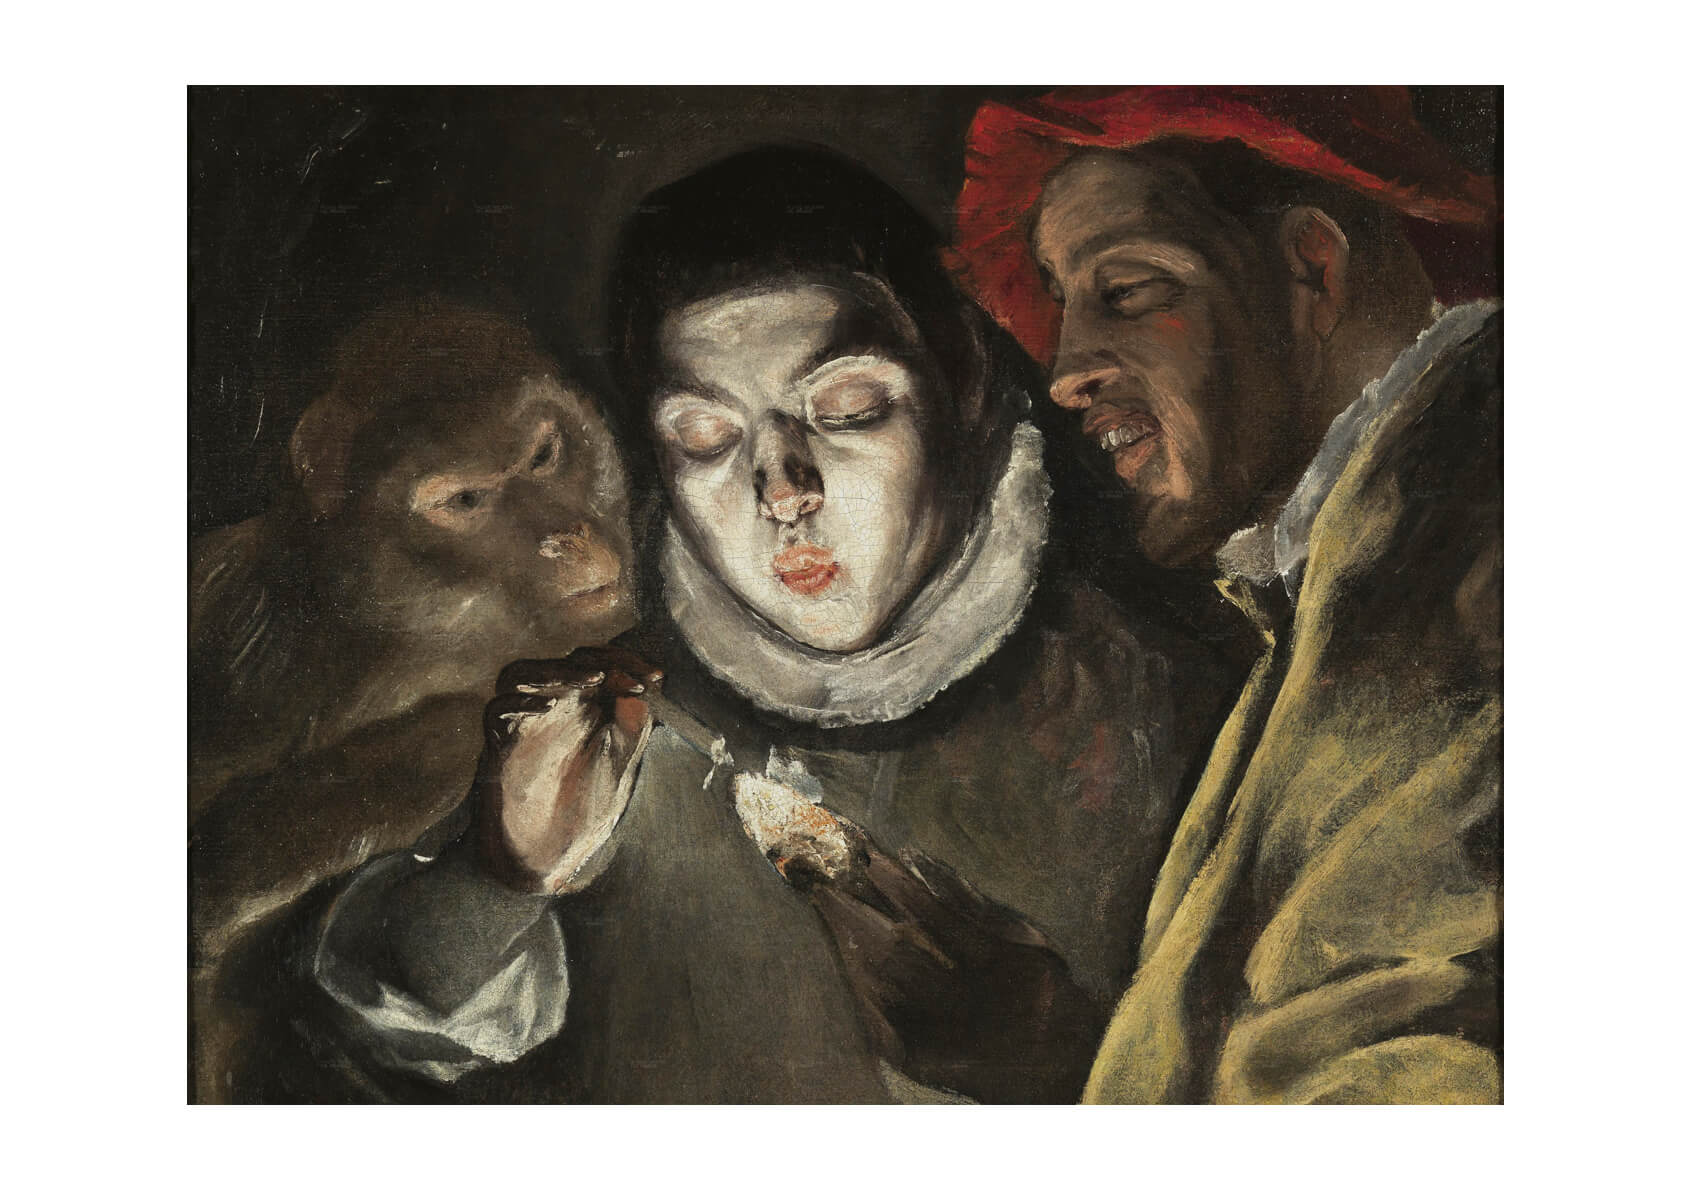 El Greco - Looking down with light